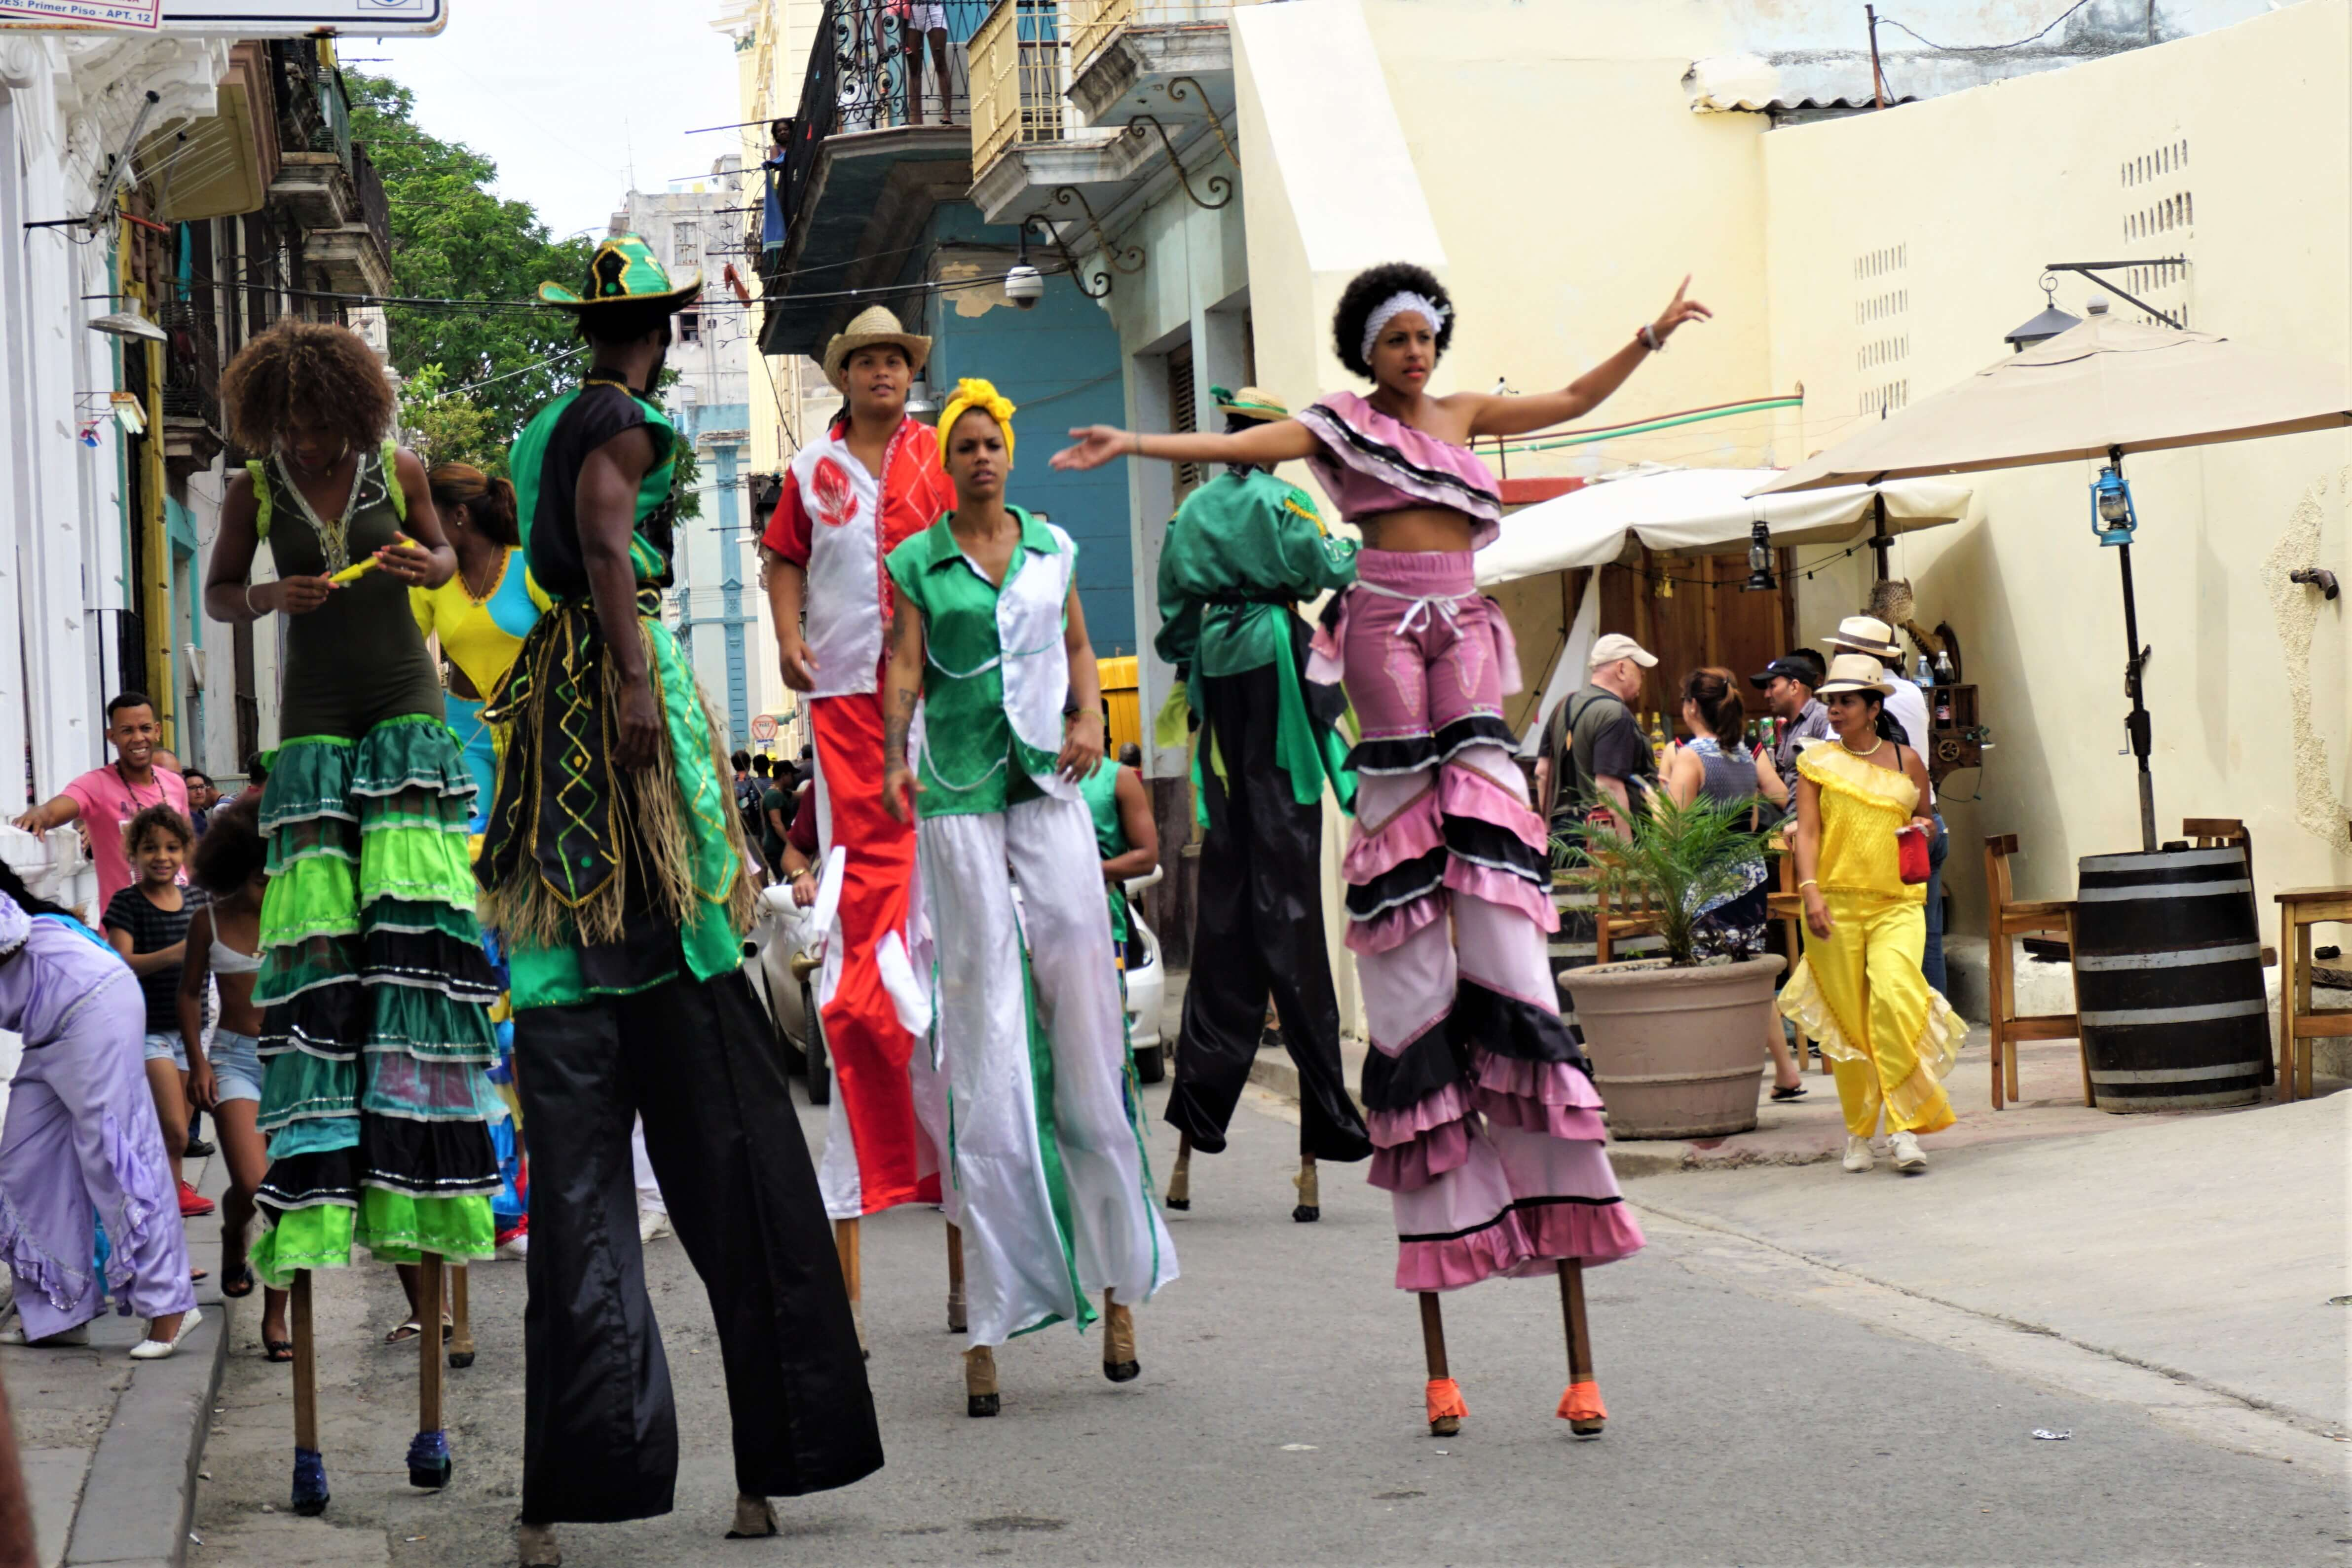 Dance show in Old Havana